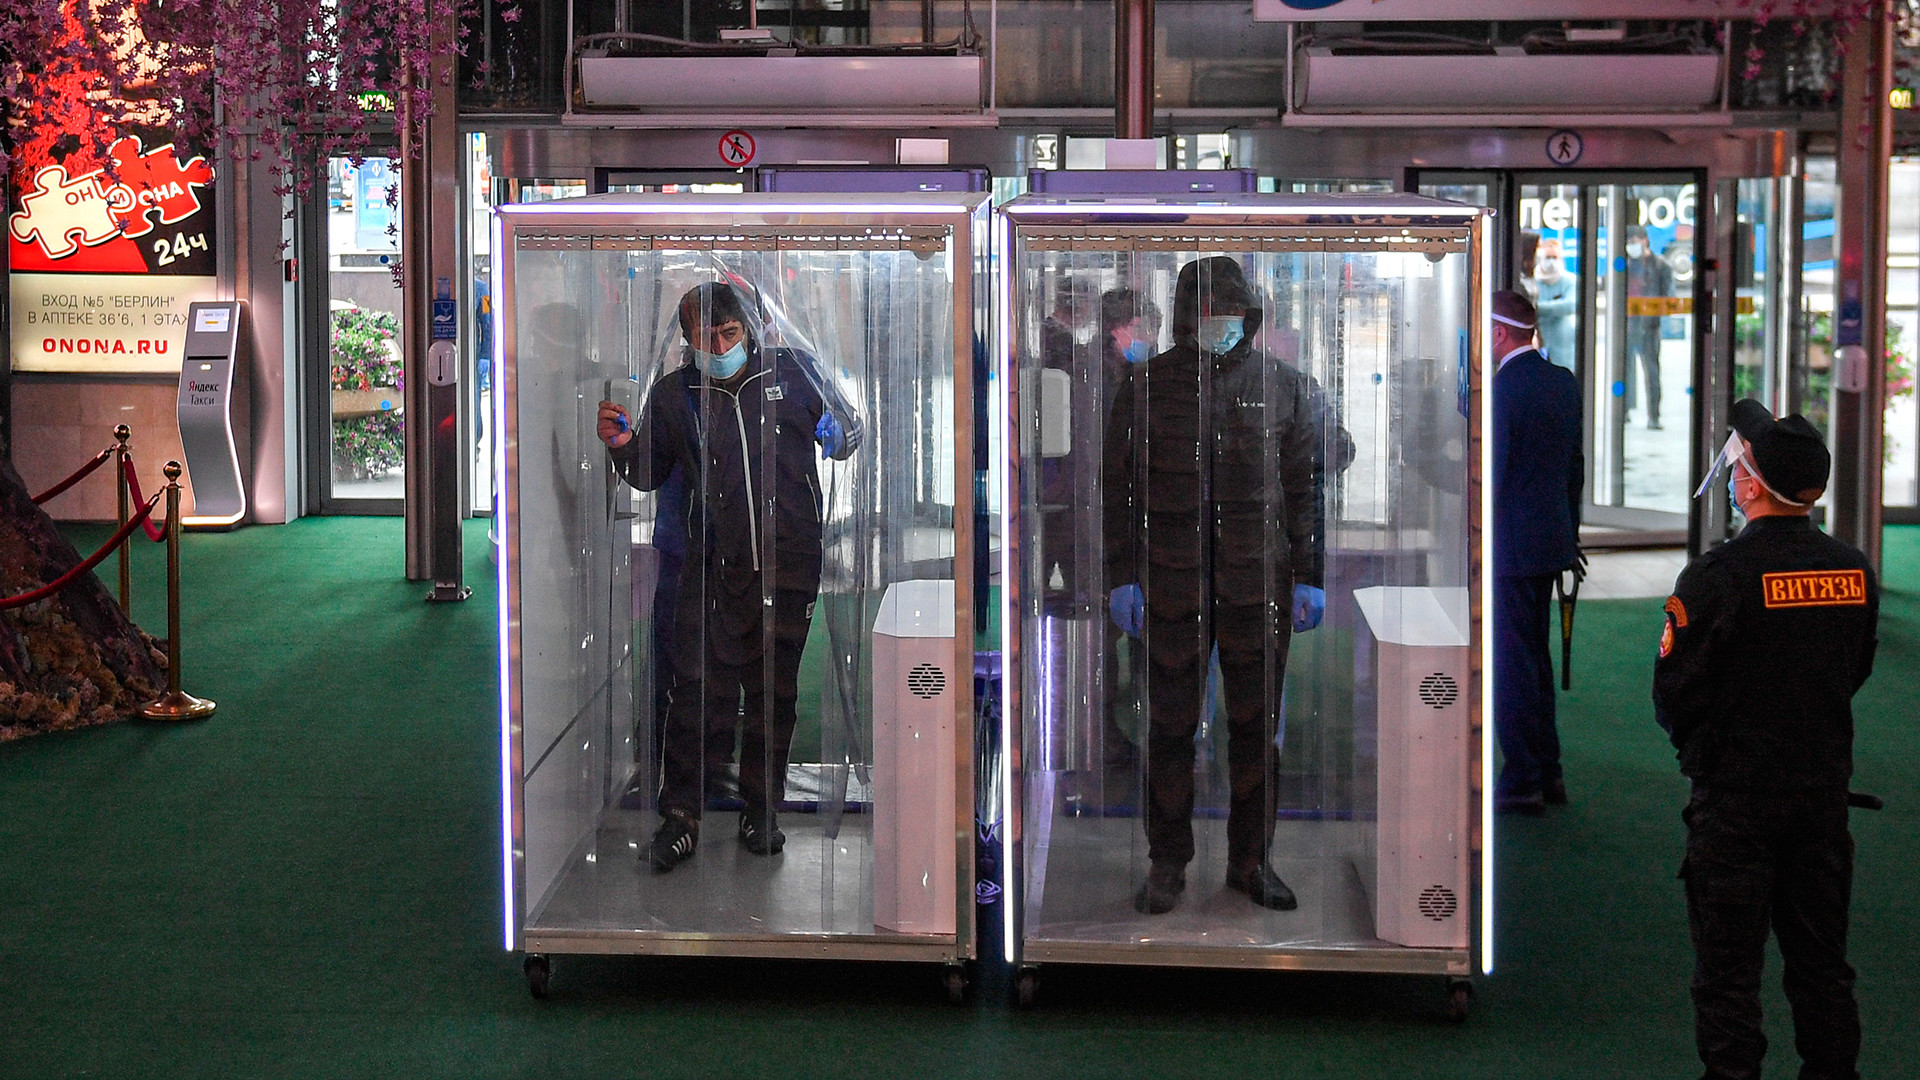 Disinfection cabins for customers.